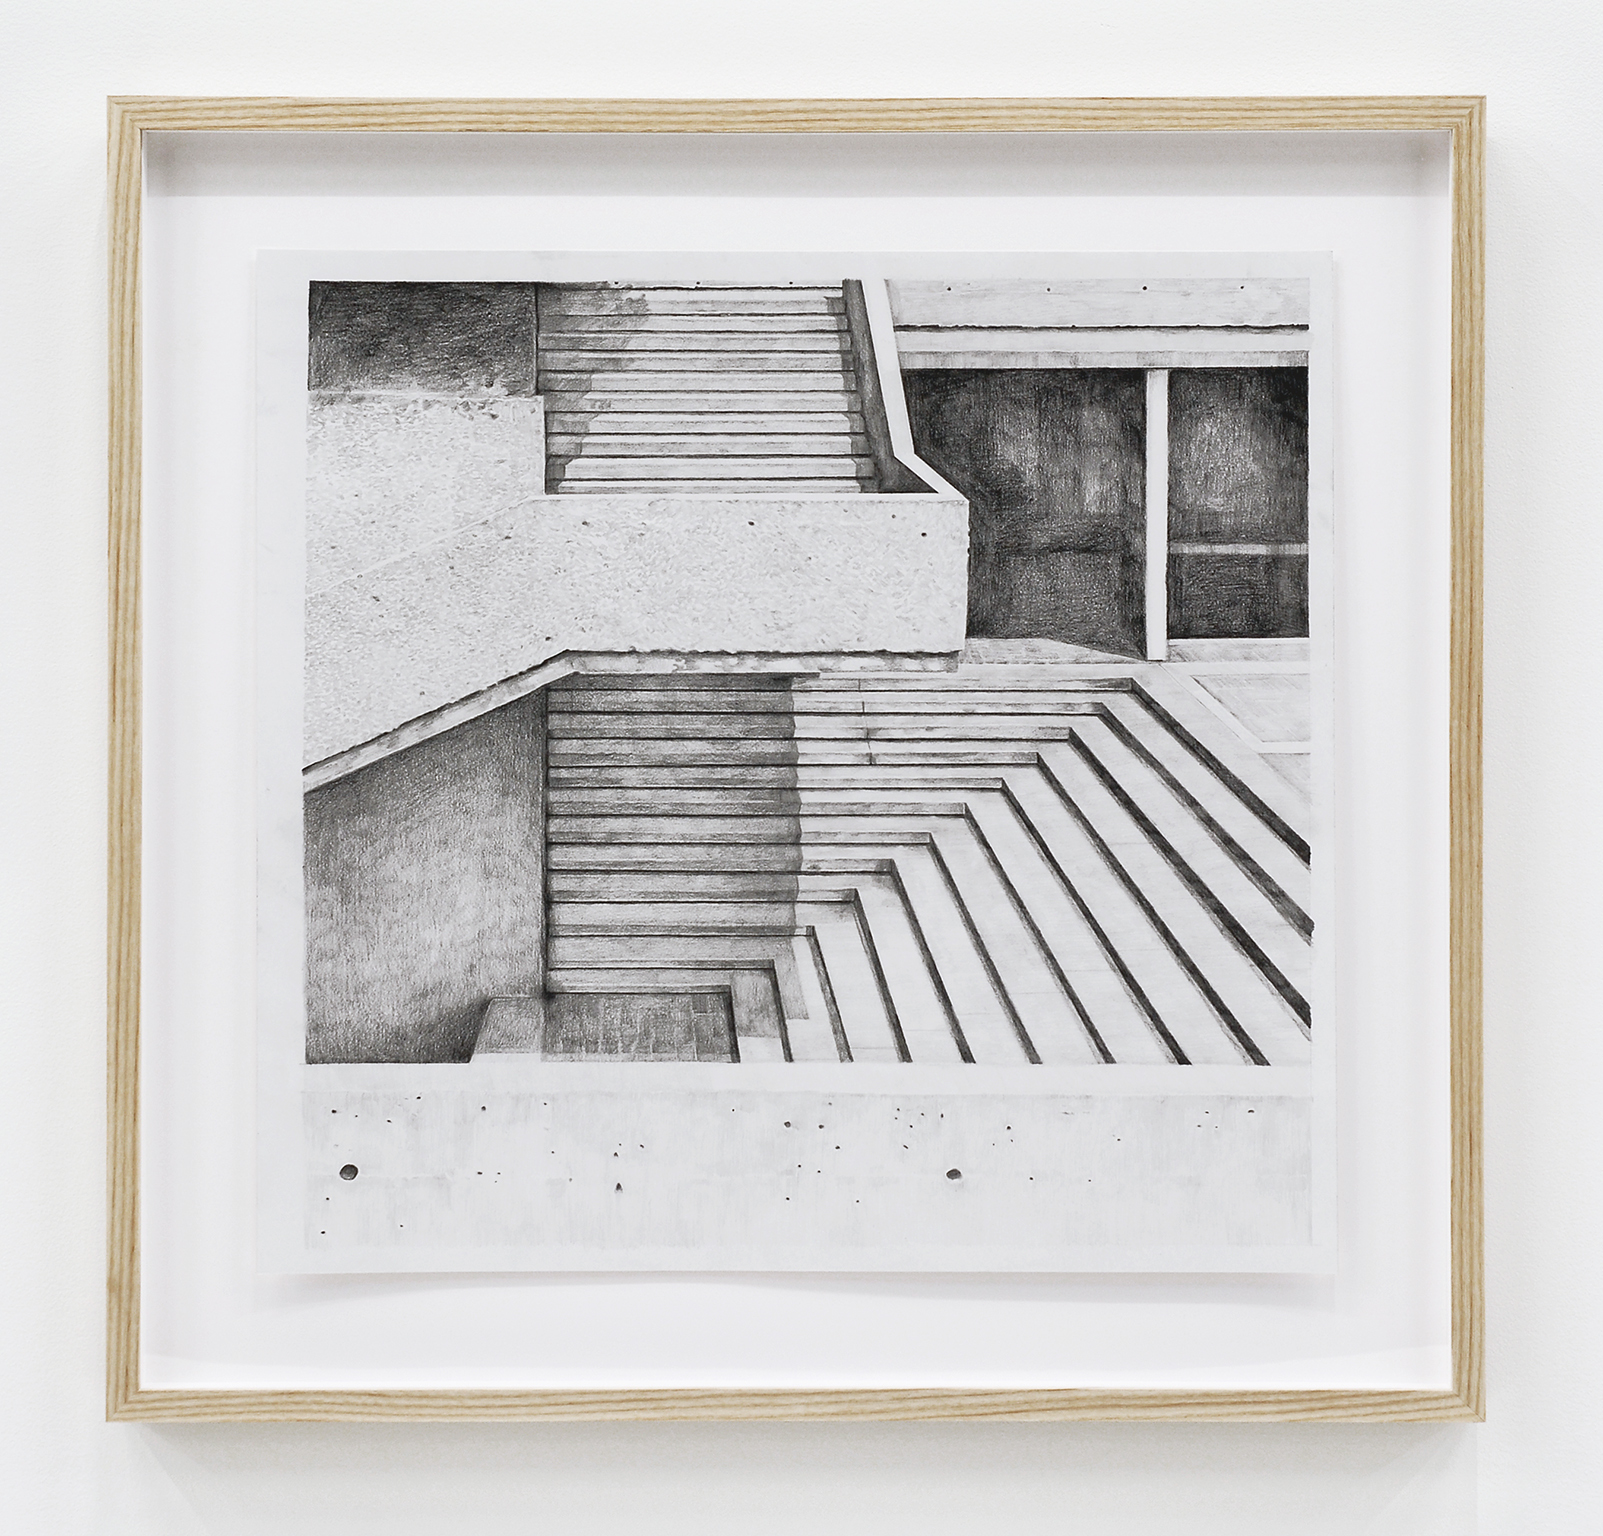 ​Alex Morrison, The Poetics of Grey (No. 11), 2007, graphite on paper, 25 x 21 in. (63 x 53 cm) by